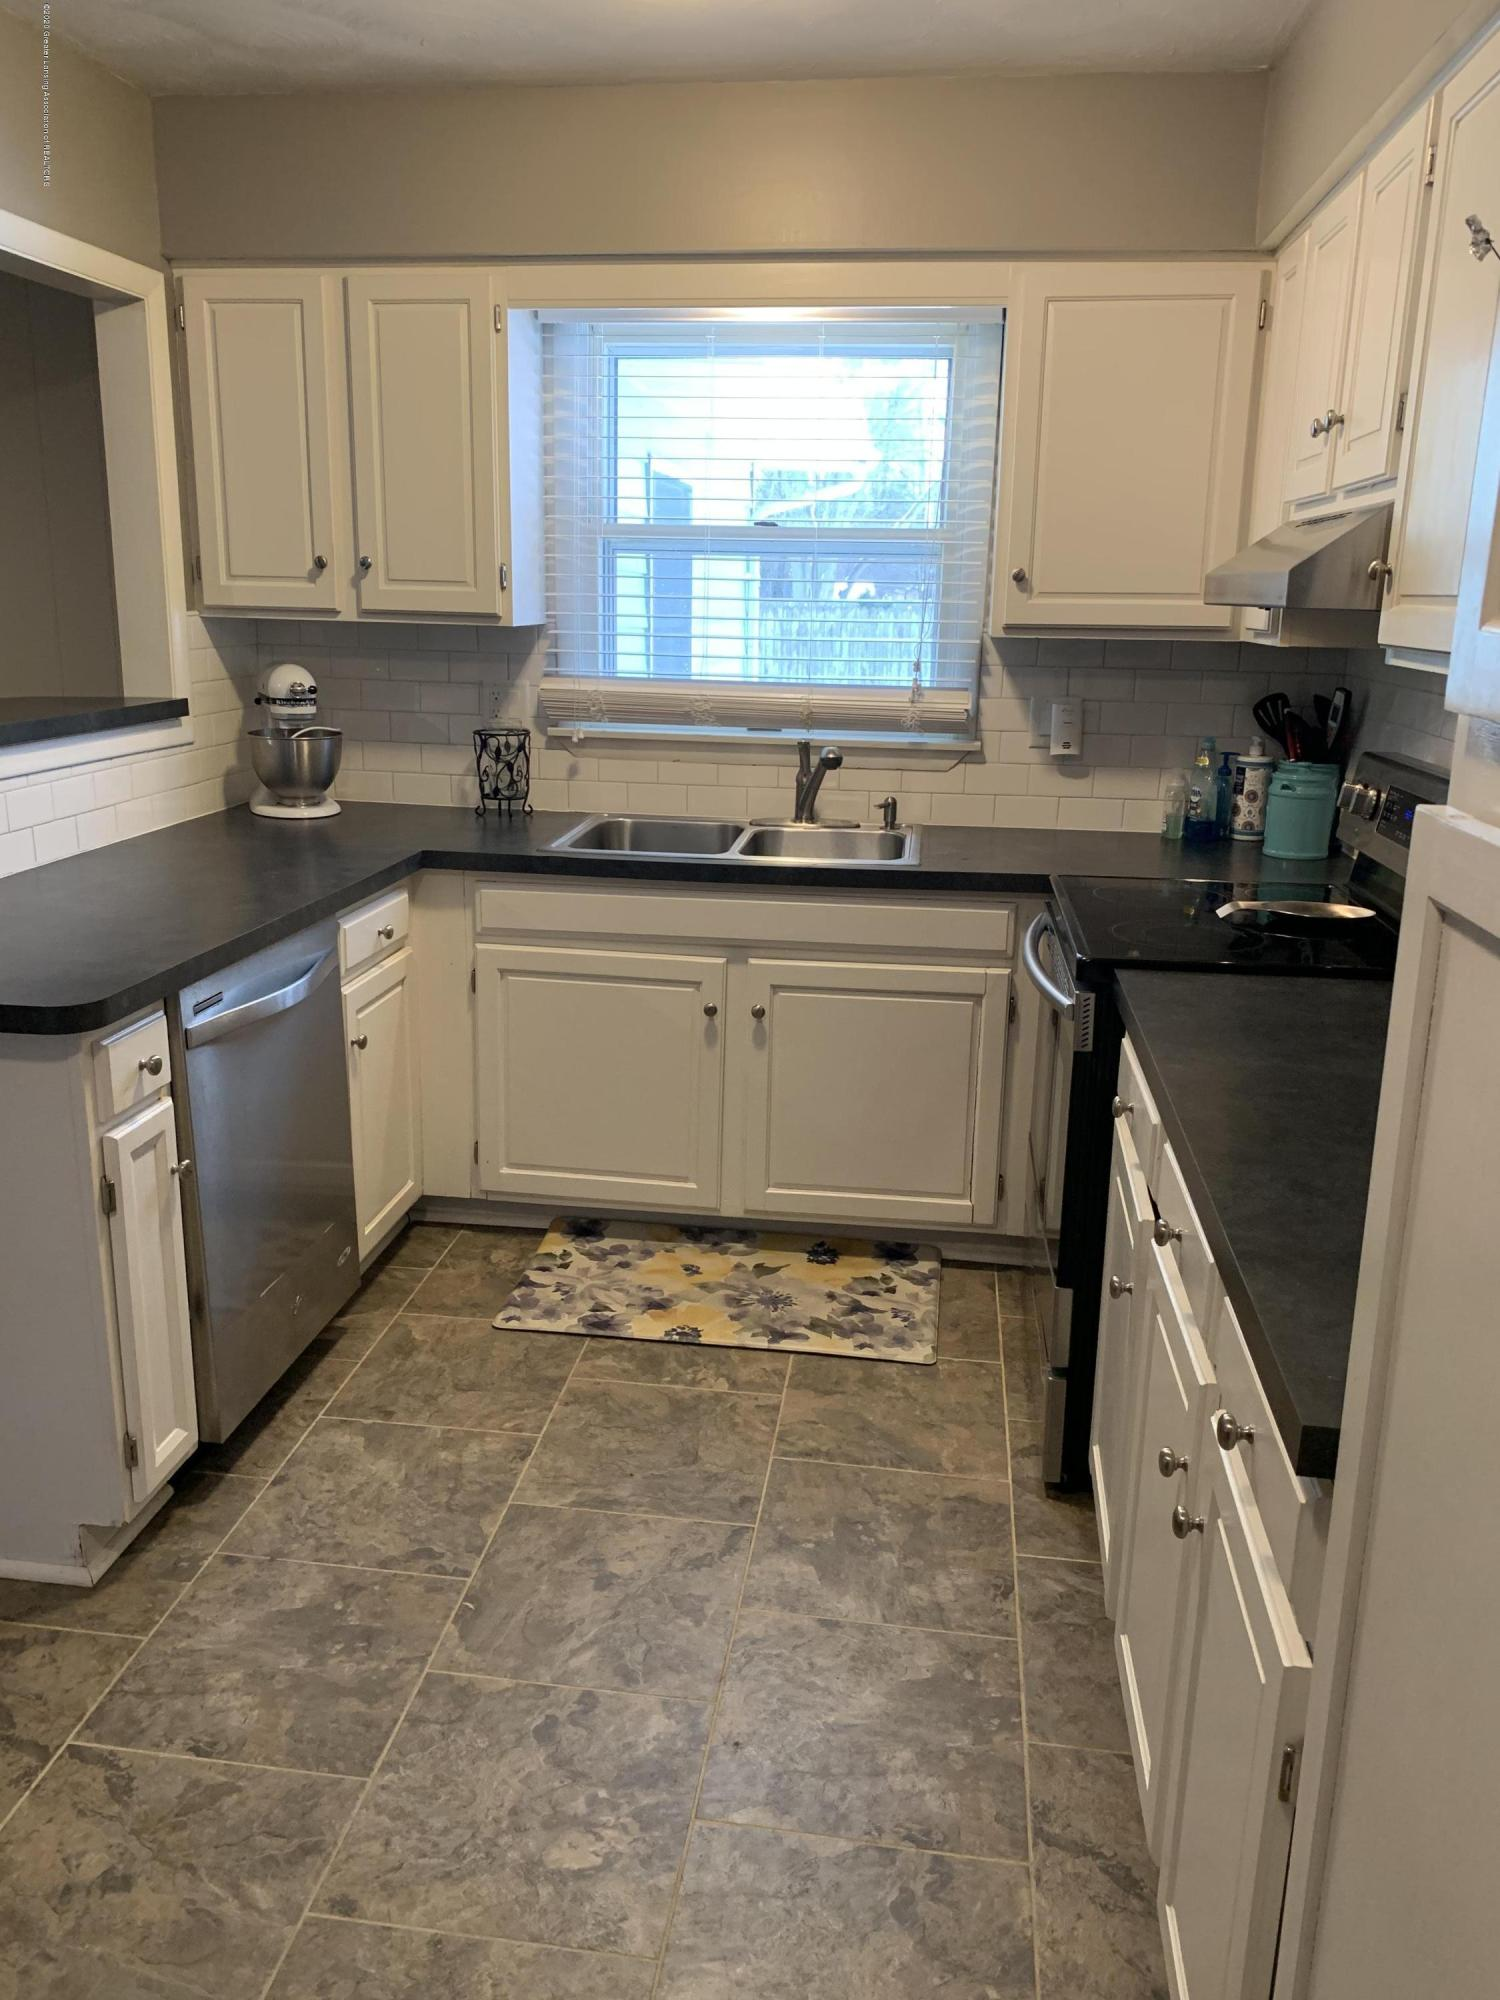 7895 W Herbison Rd - kitchen - 5